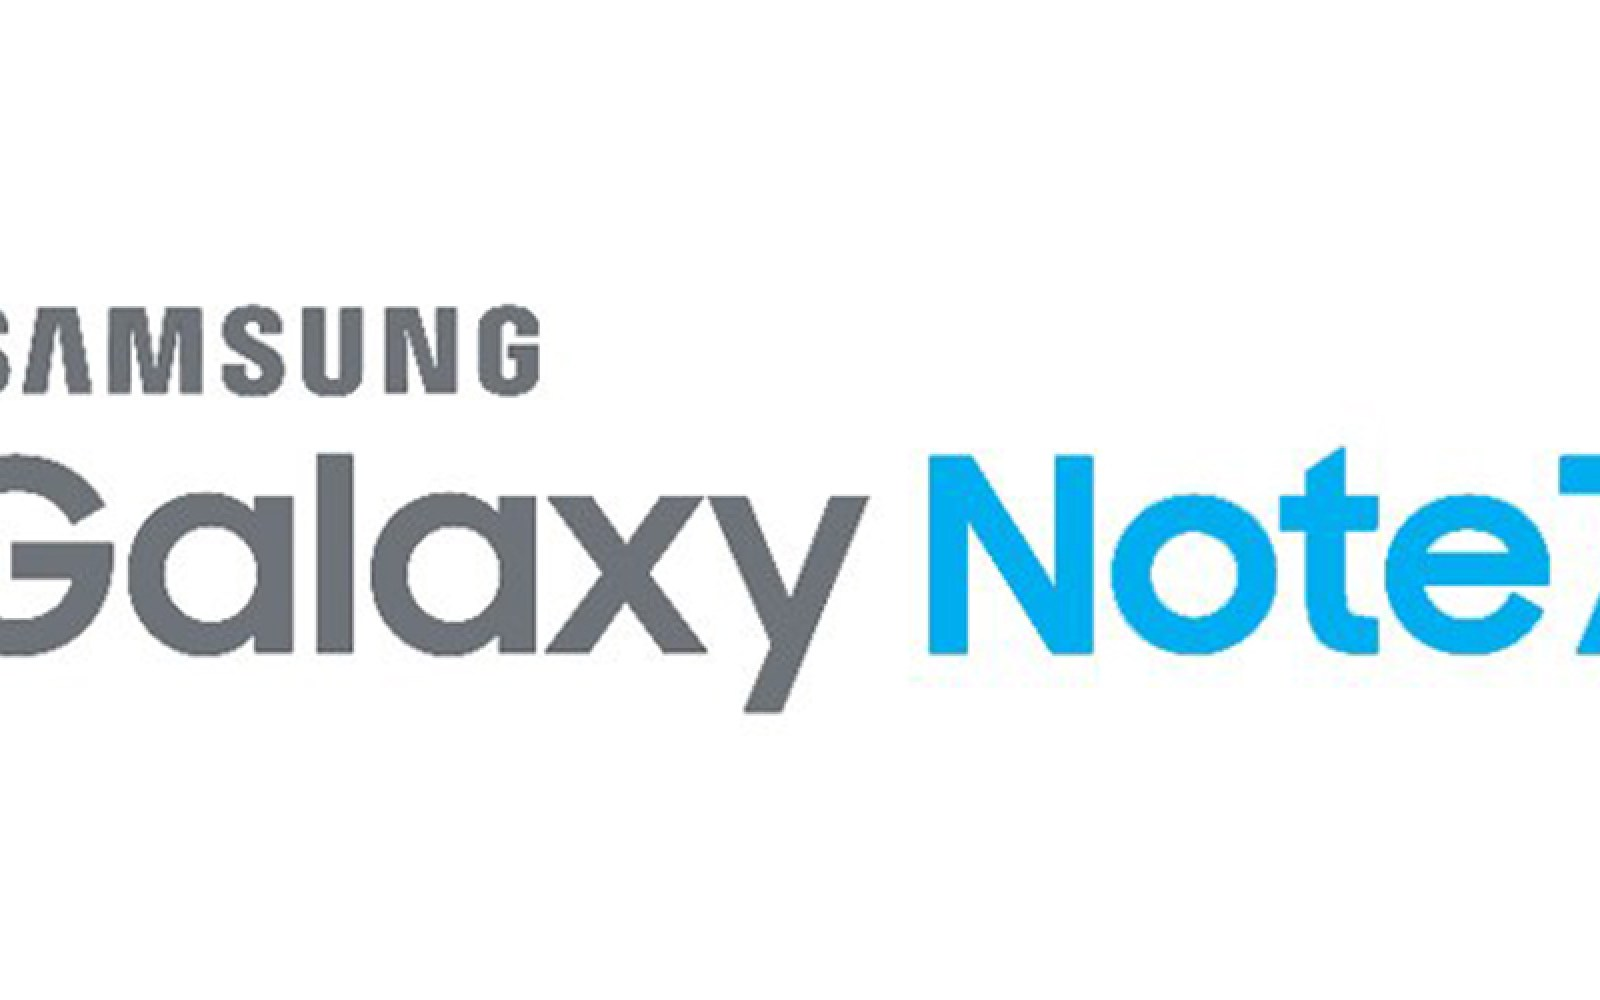 Galaxy Note 7 logo leaks, iris scanner and other specs apparently confirmed